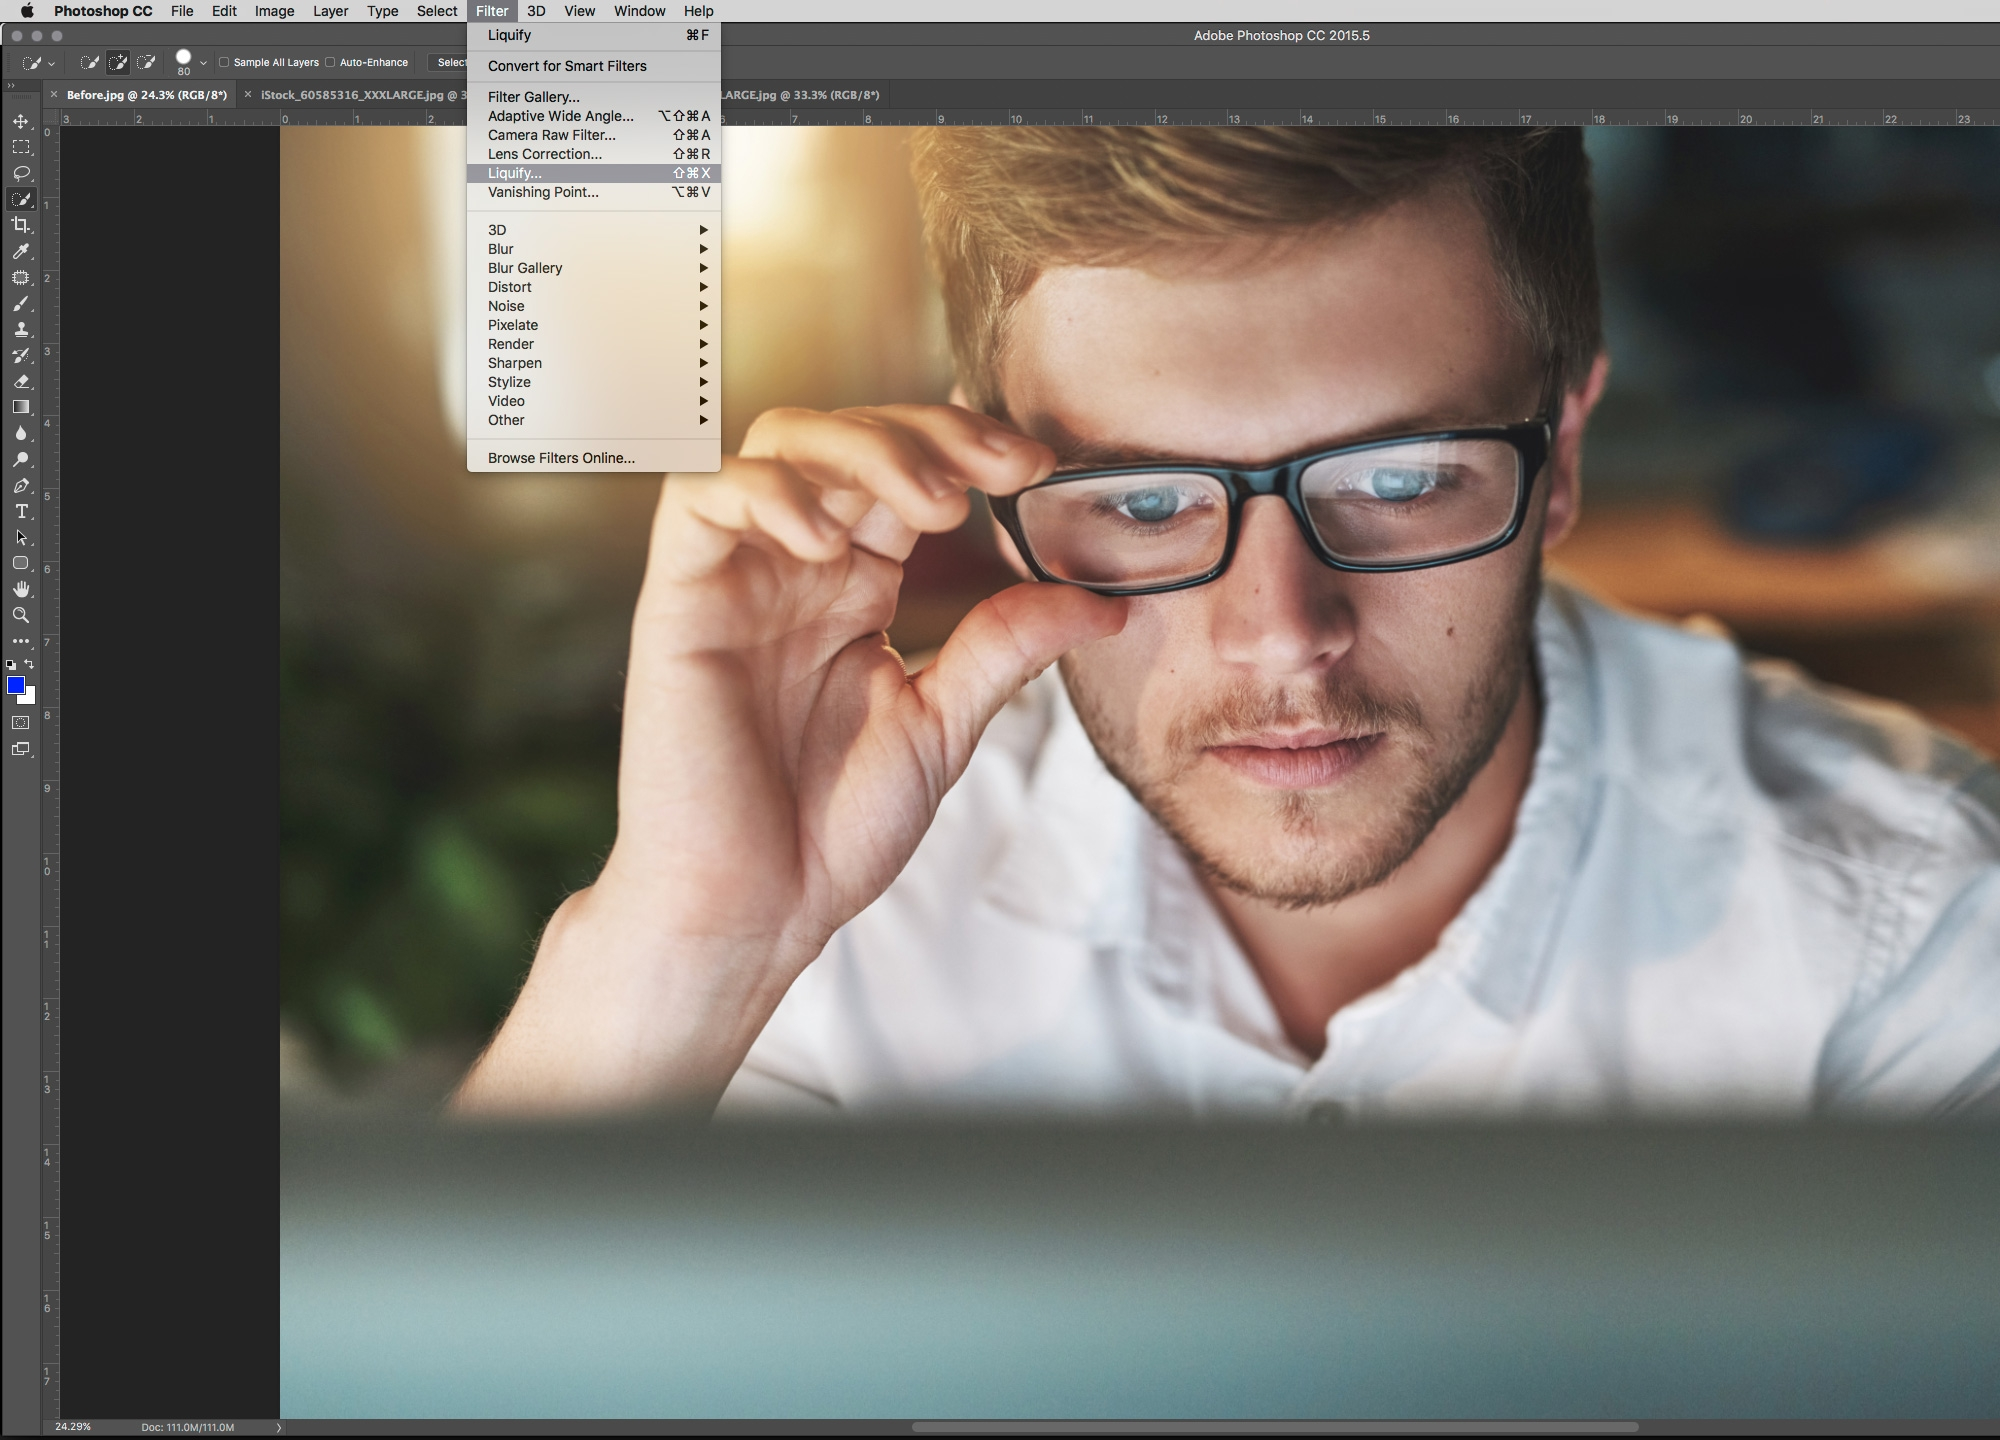 Photoshop tutorial: Use Face Aware Liquify to add smiles and